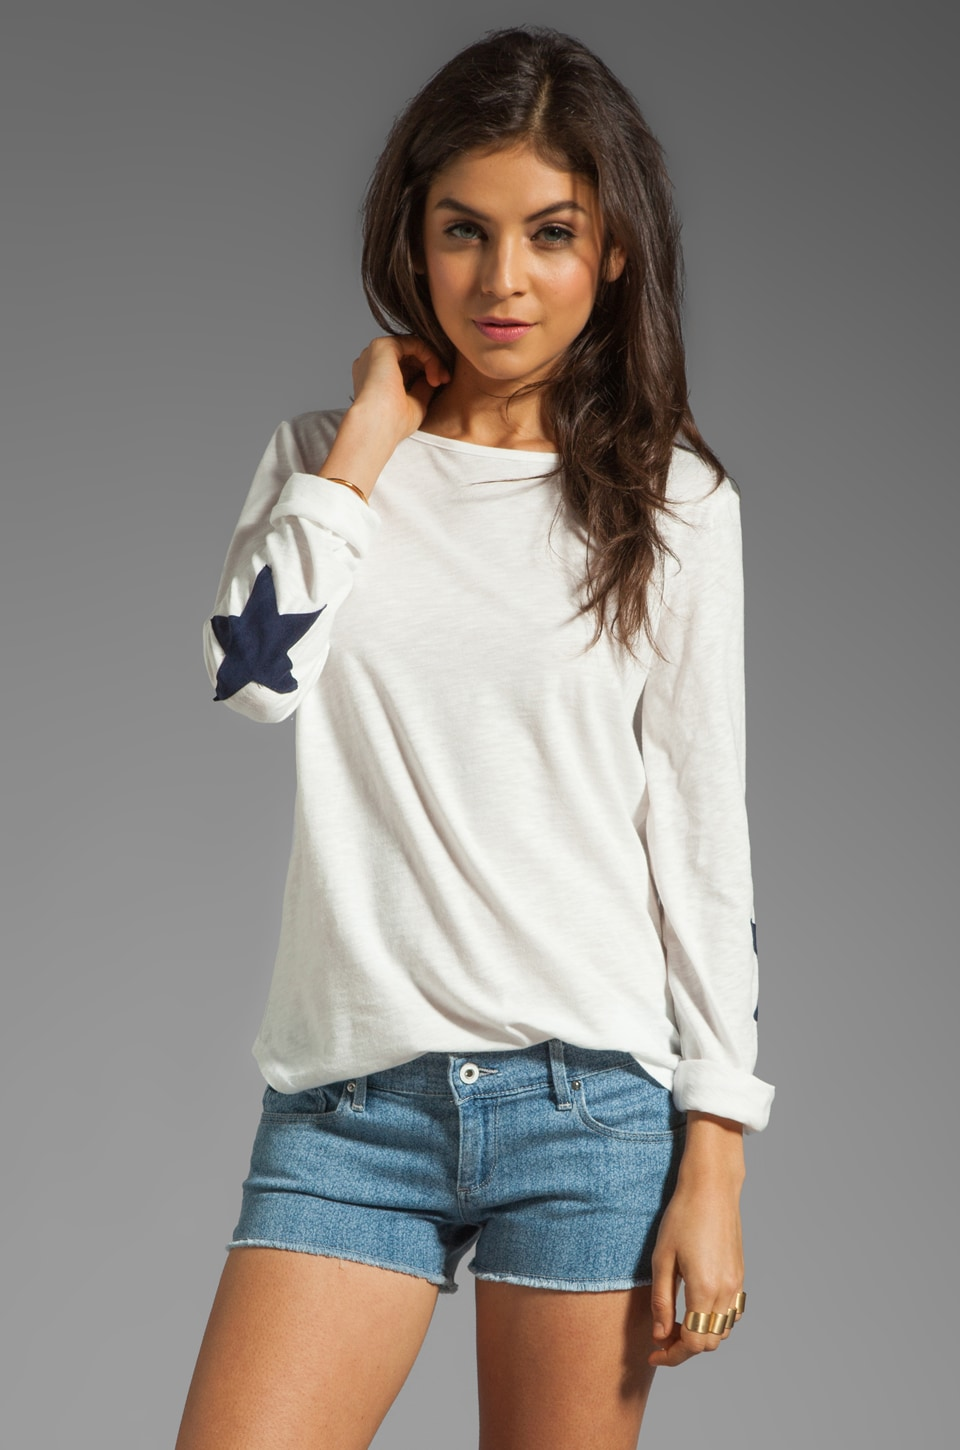 TEXTILE Elizabeth and James Starboard Adelson Tee in White